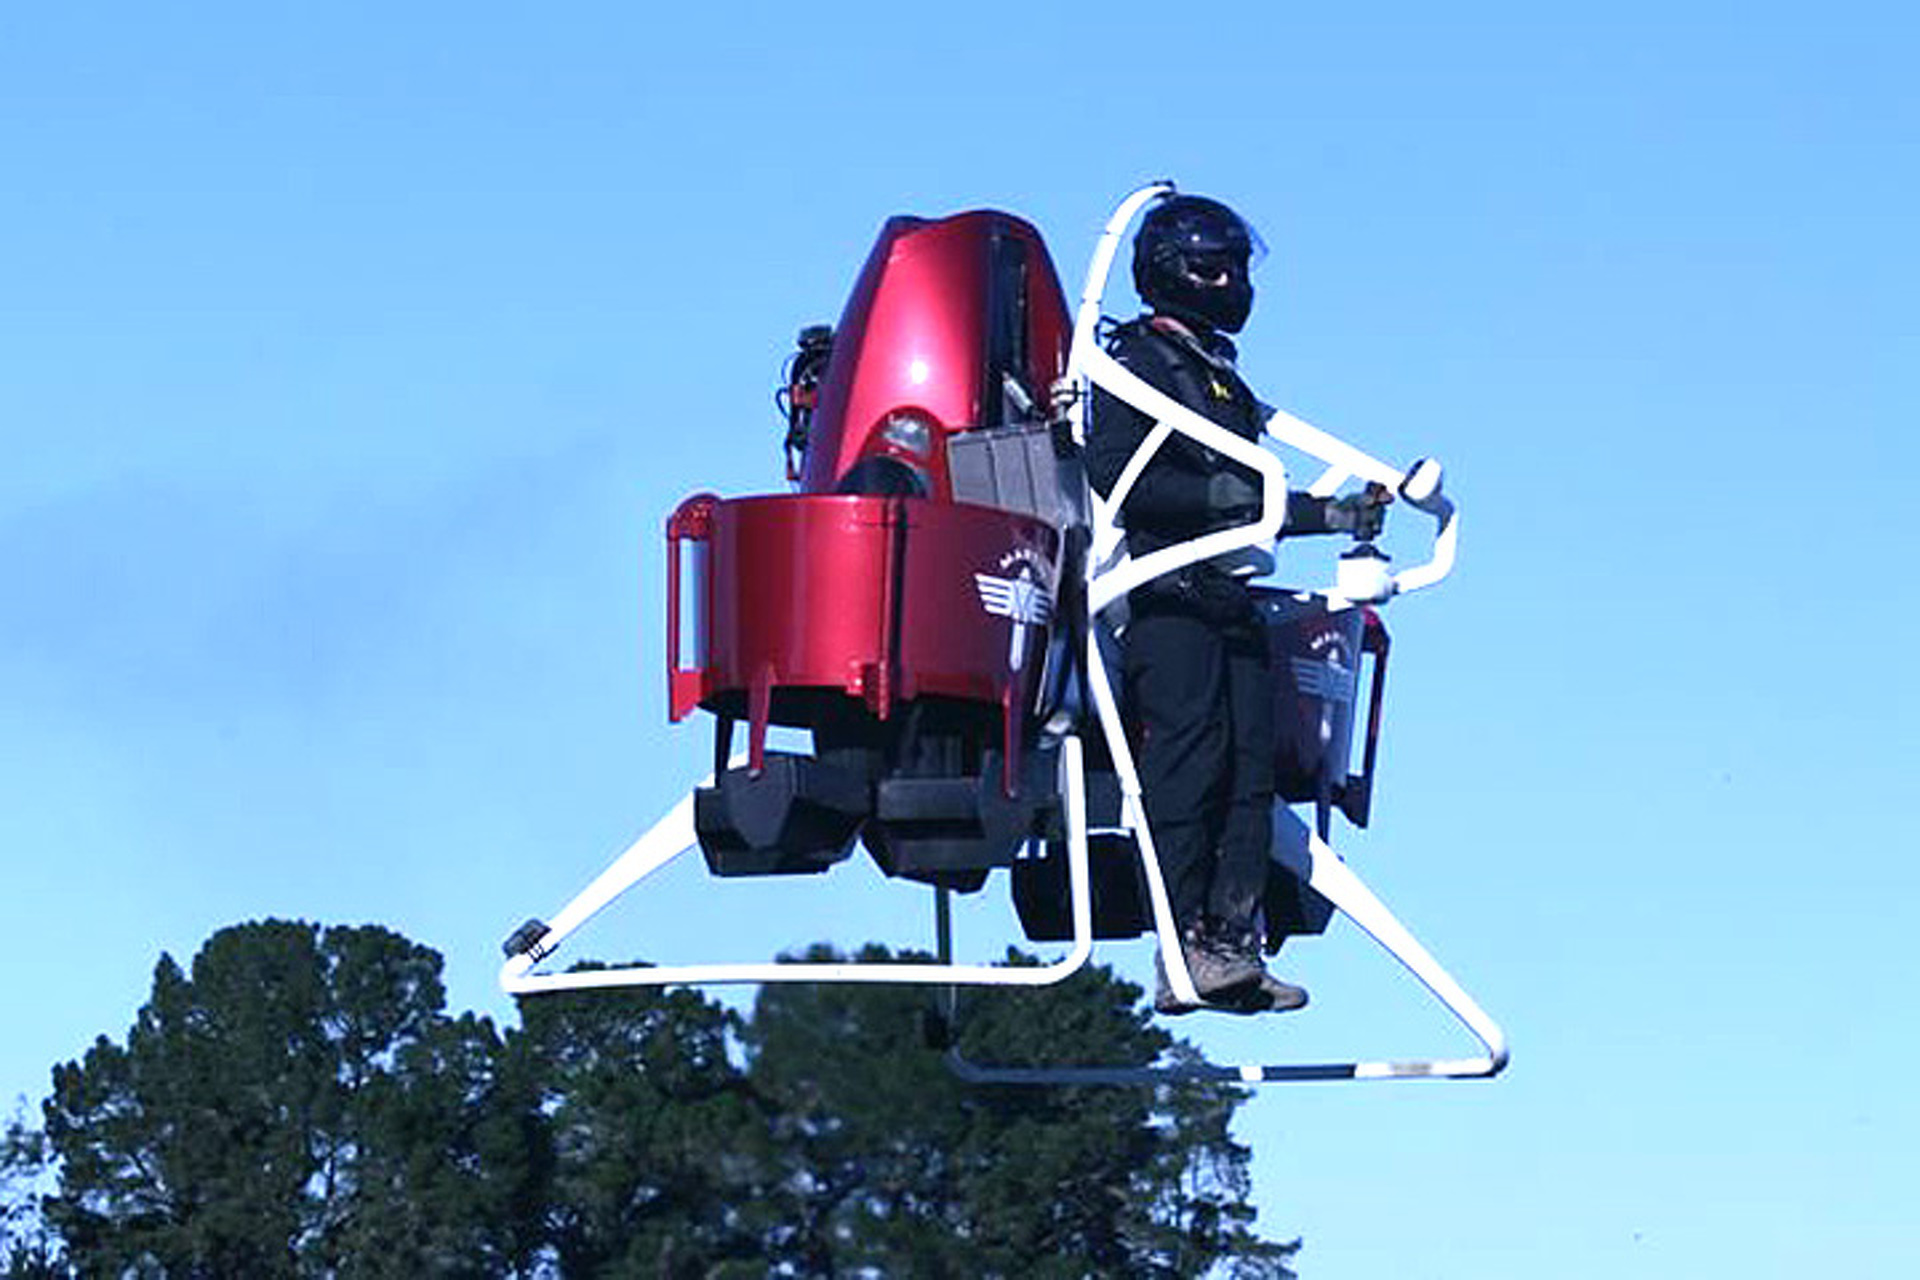 By Summer 2016 You Could Be Flying with a Jetpack